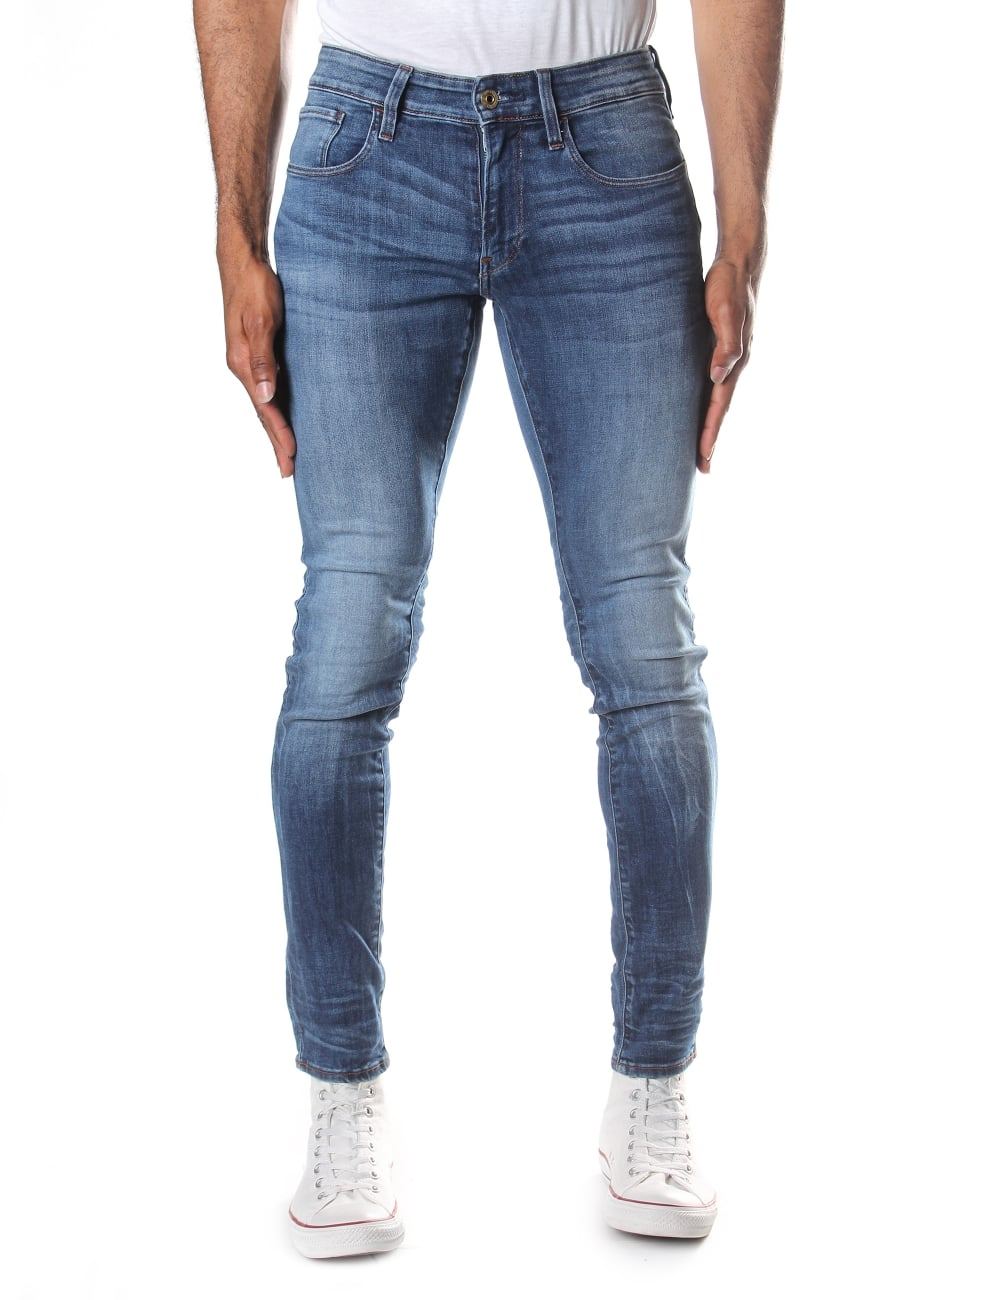 f6a8a6df6d92 G-Star Raw Men's 3301 Deconstructed Super Slim Elto Super Stretch Jean